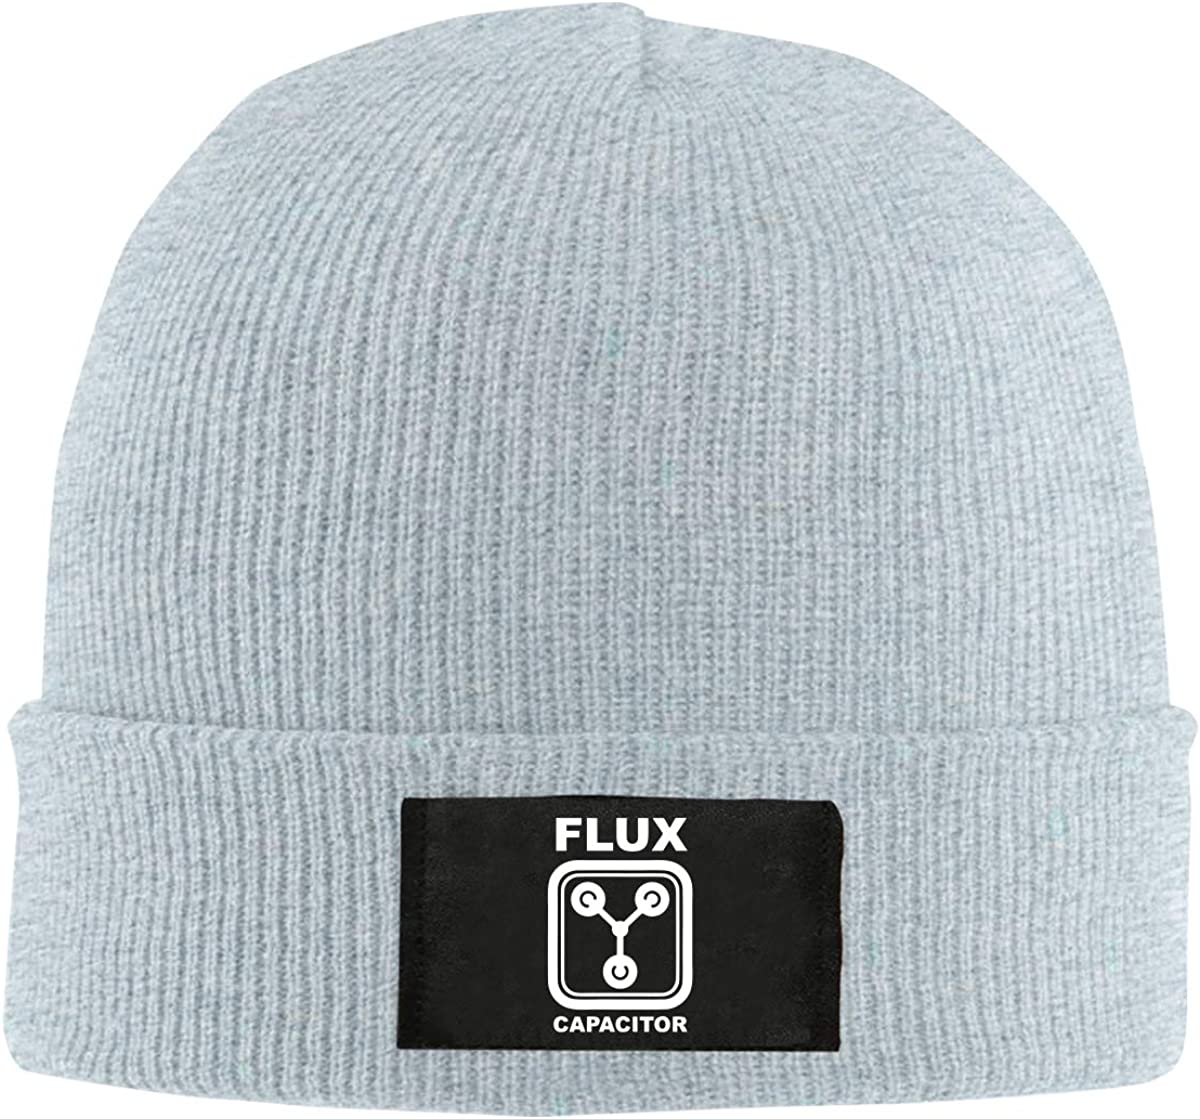 Flux Capacitor Back to The Future Winter Beanie Hat Knit Hat Cap for for Men /& Women